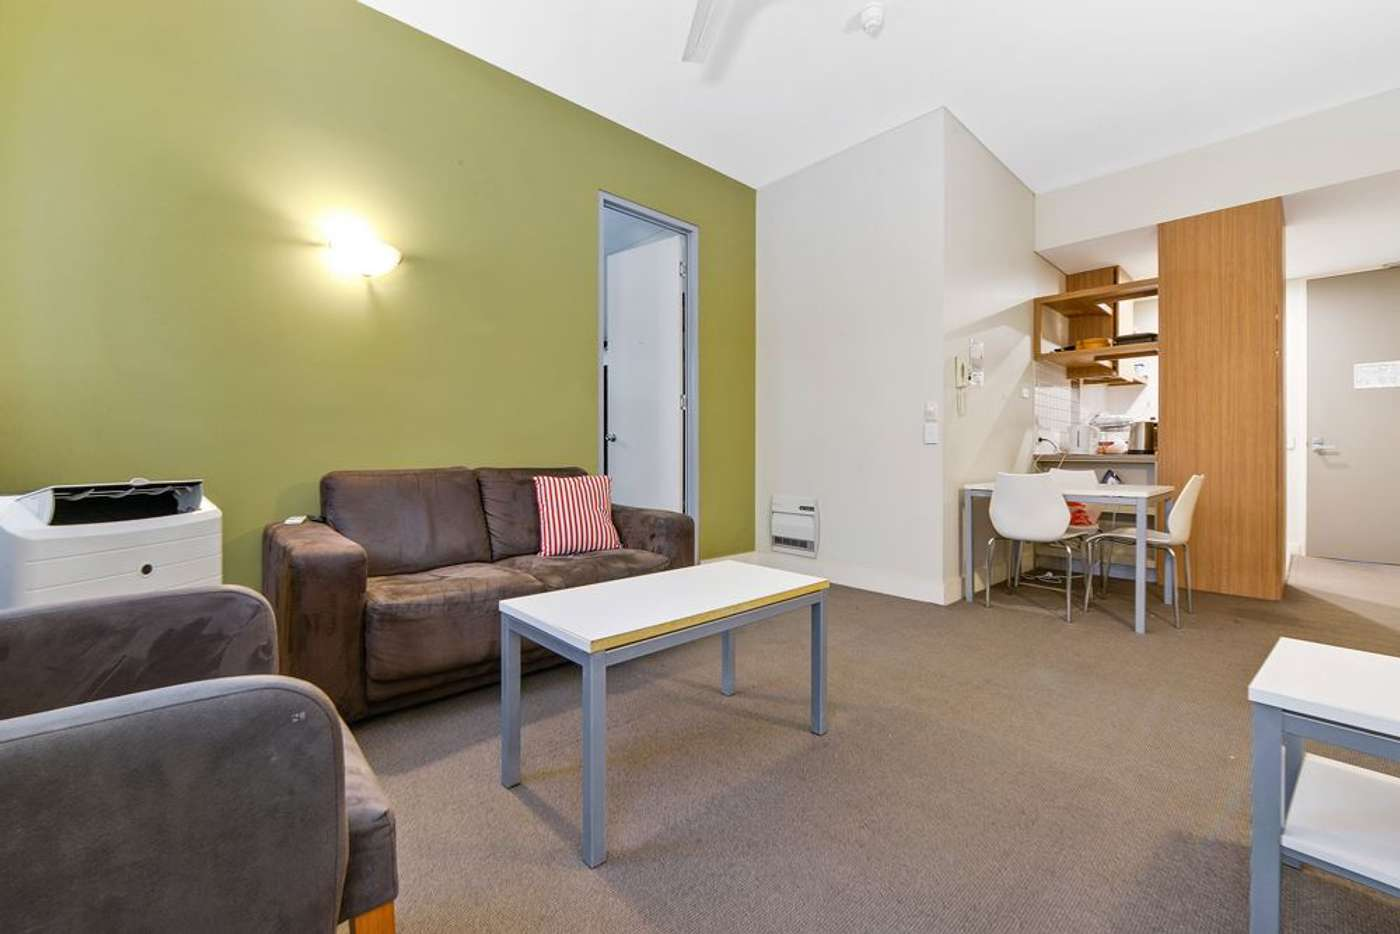 Main view of Homely apartment listing, 1003/23 King William Street, Adelaide SA 5000